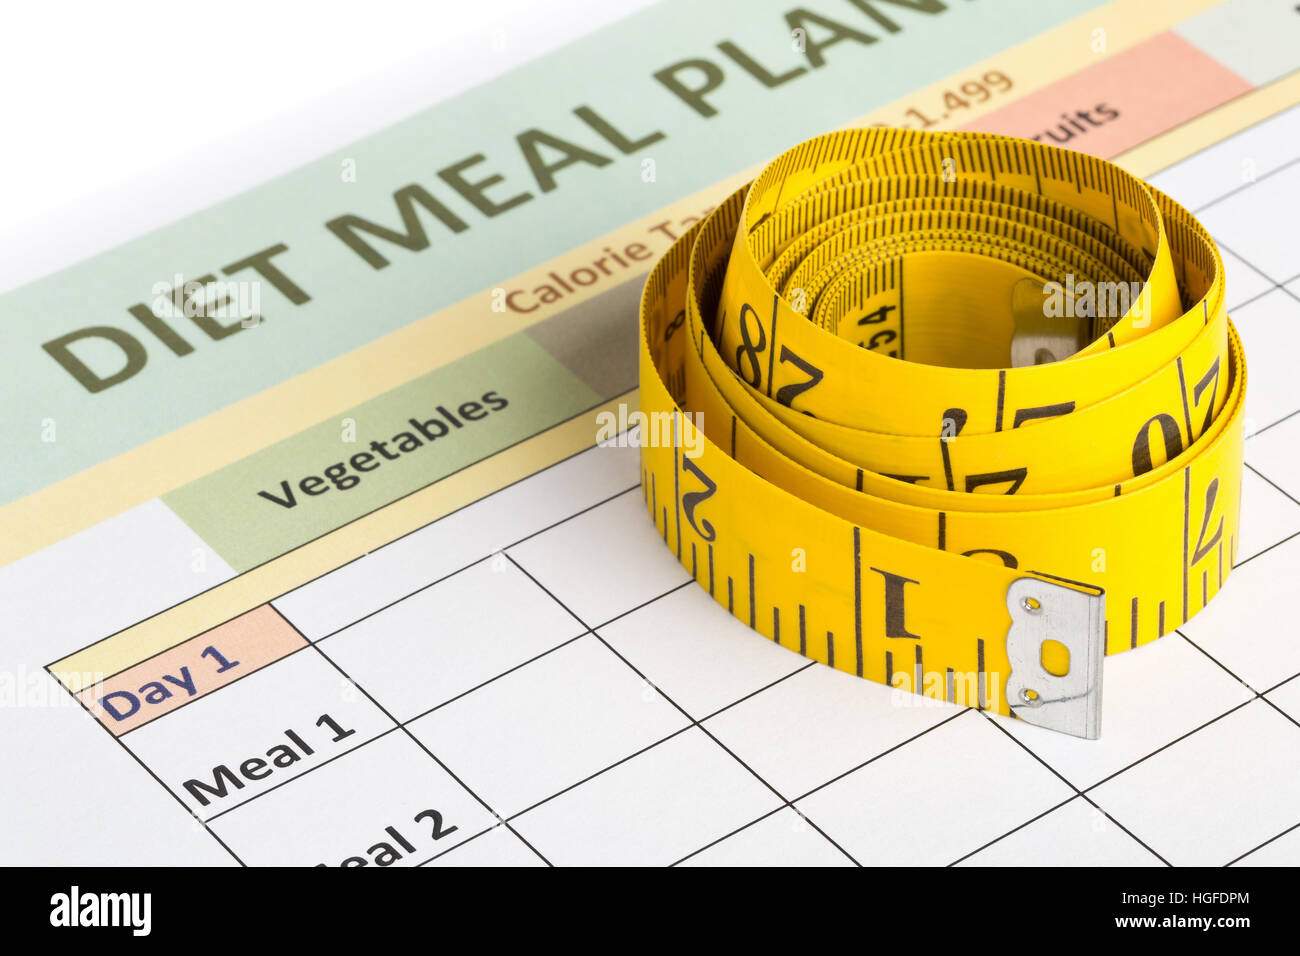 measurement tape on diet meal planner sheet dieting or weight loss